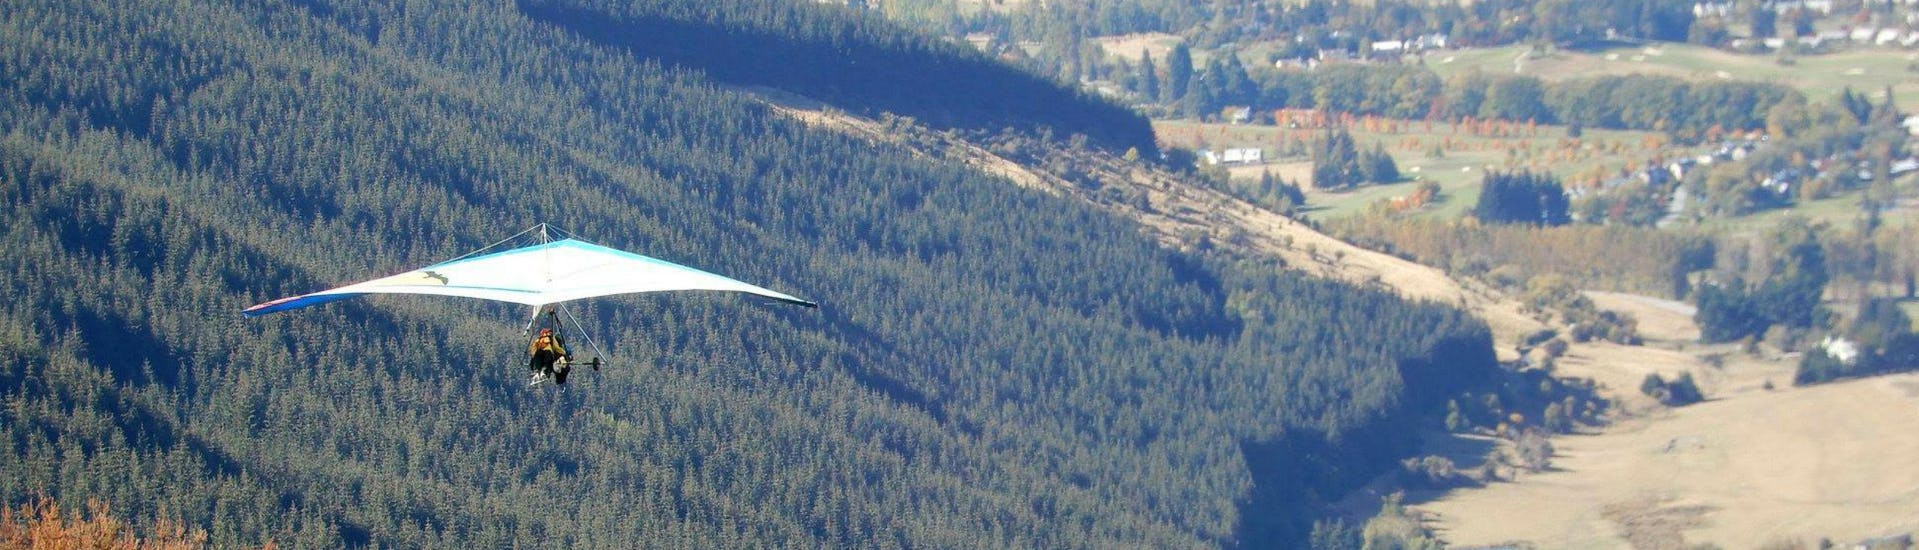 A hang glider from Skytrek Queenstown is gently floating above the woodland while Summer Hang Gliding in Queenstown.